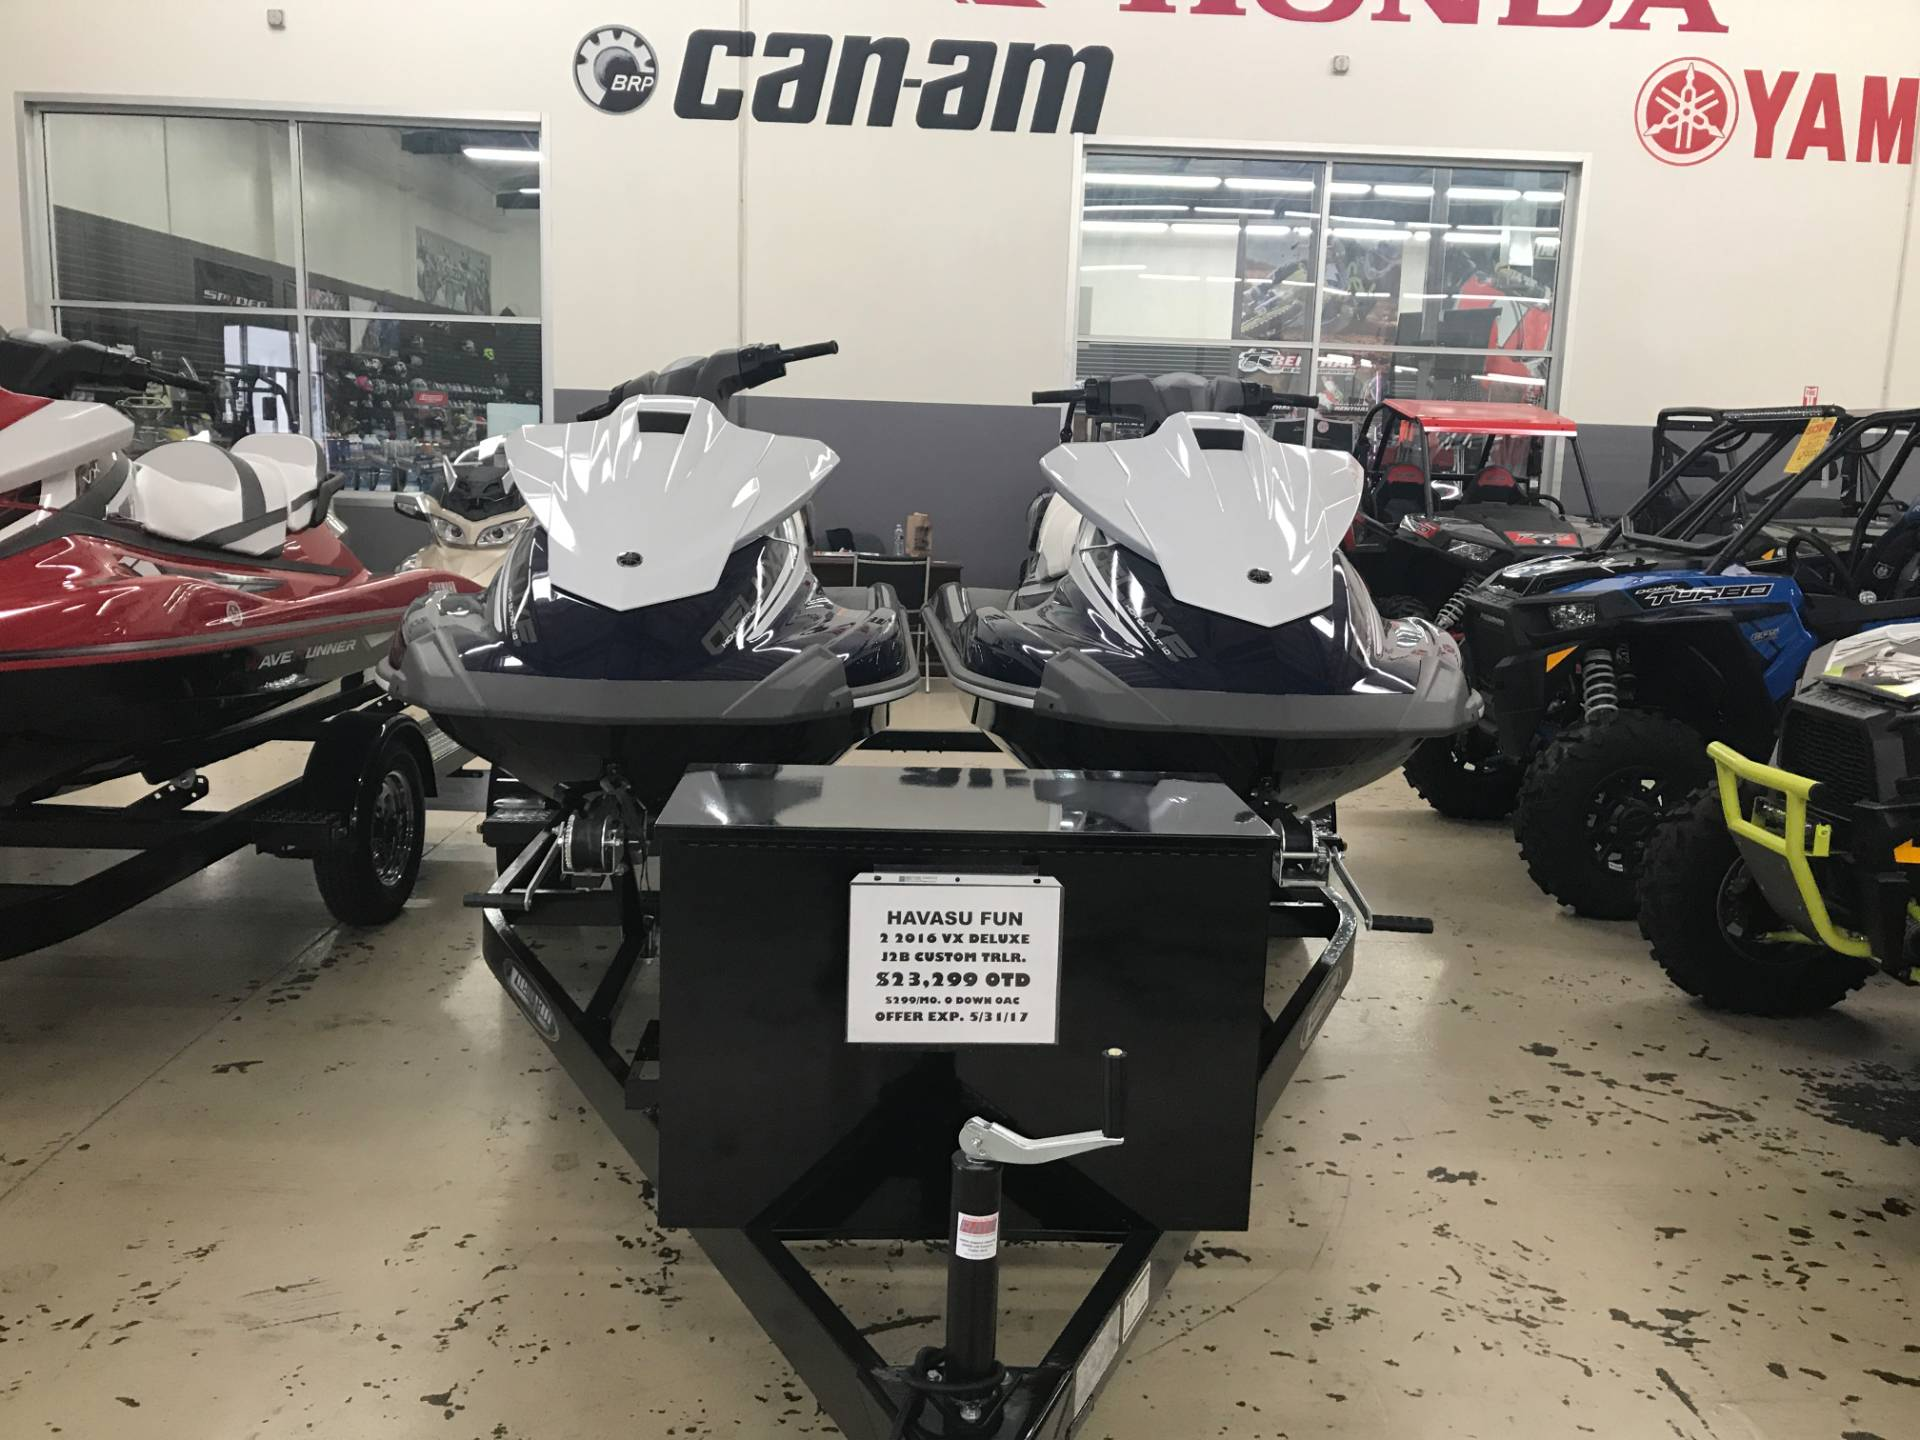 2016 Yamaha VX Deluxe for sale 14325